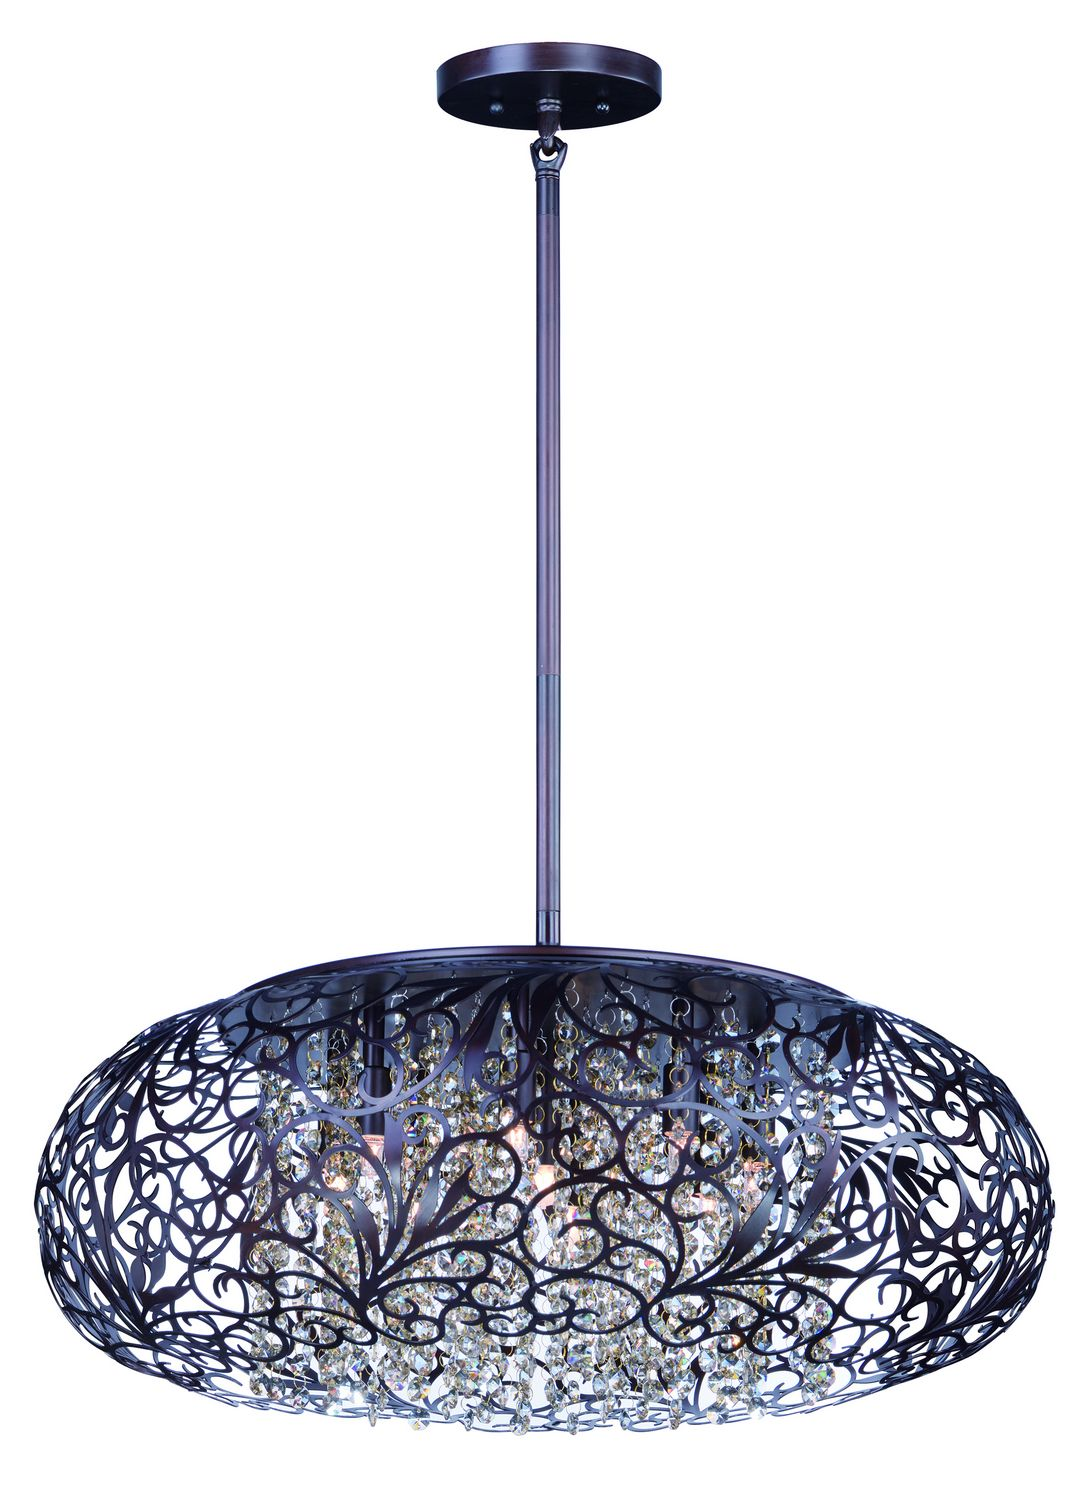 Nice Seven Light Pendant The Arabesque Collection`s Intricate Patterns Are  Formed In Metal And Finished In Golden Silver. Strands Of Crystal Beads Add  Sparkle As ...